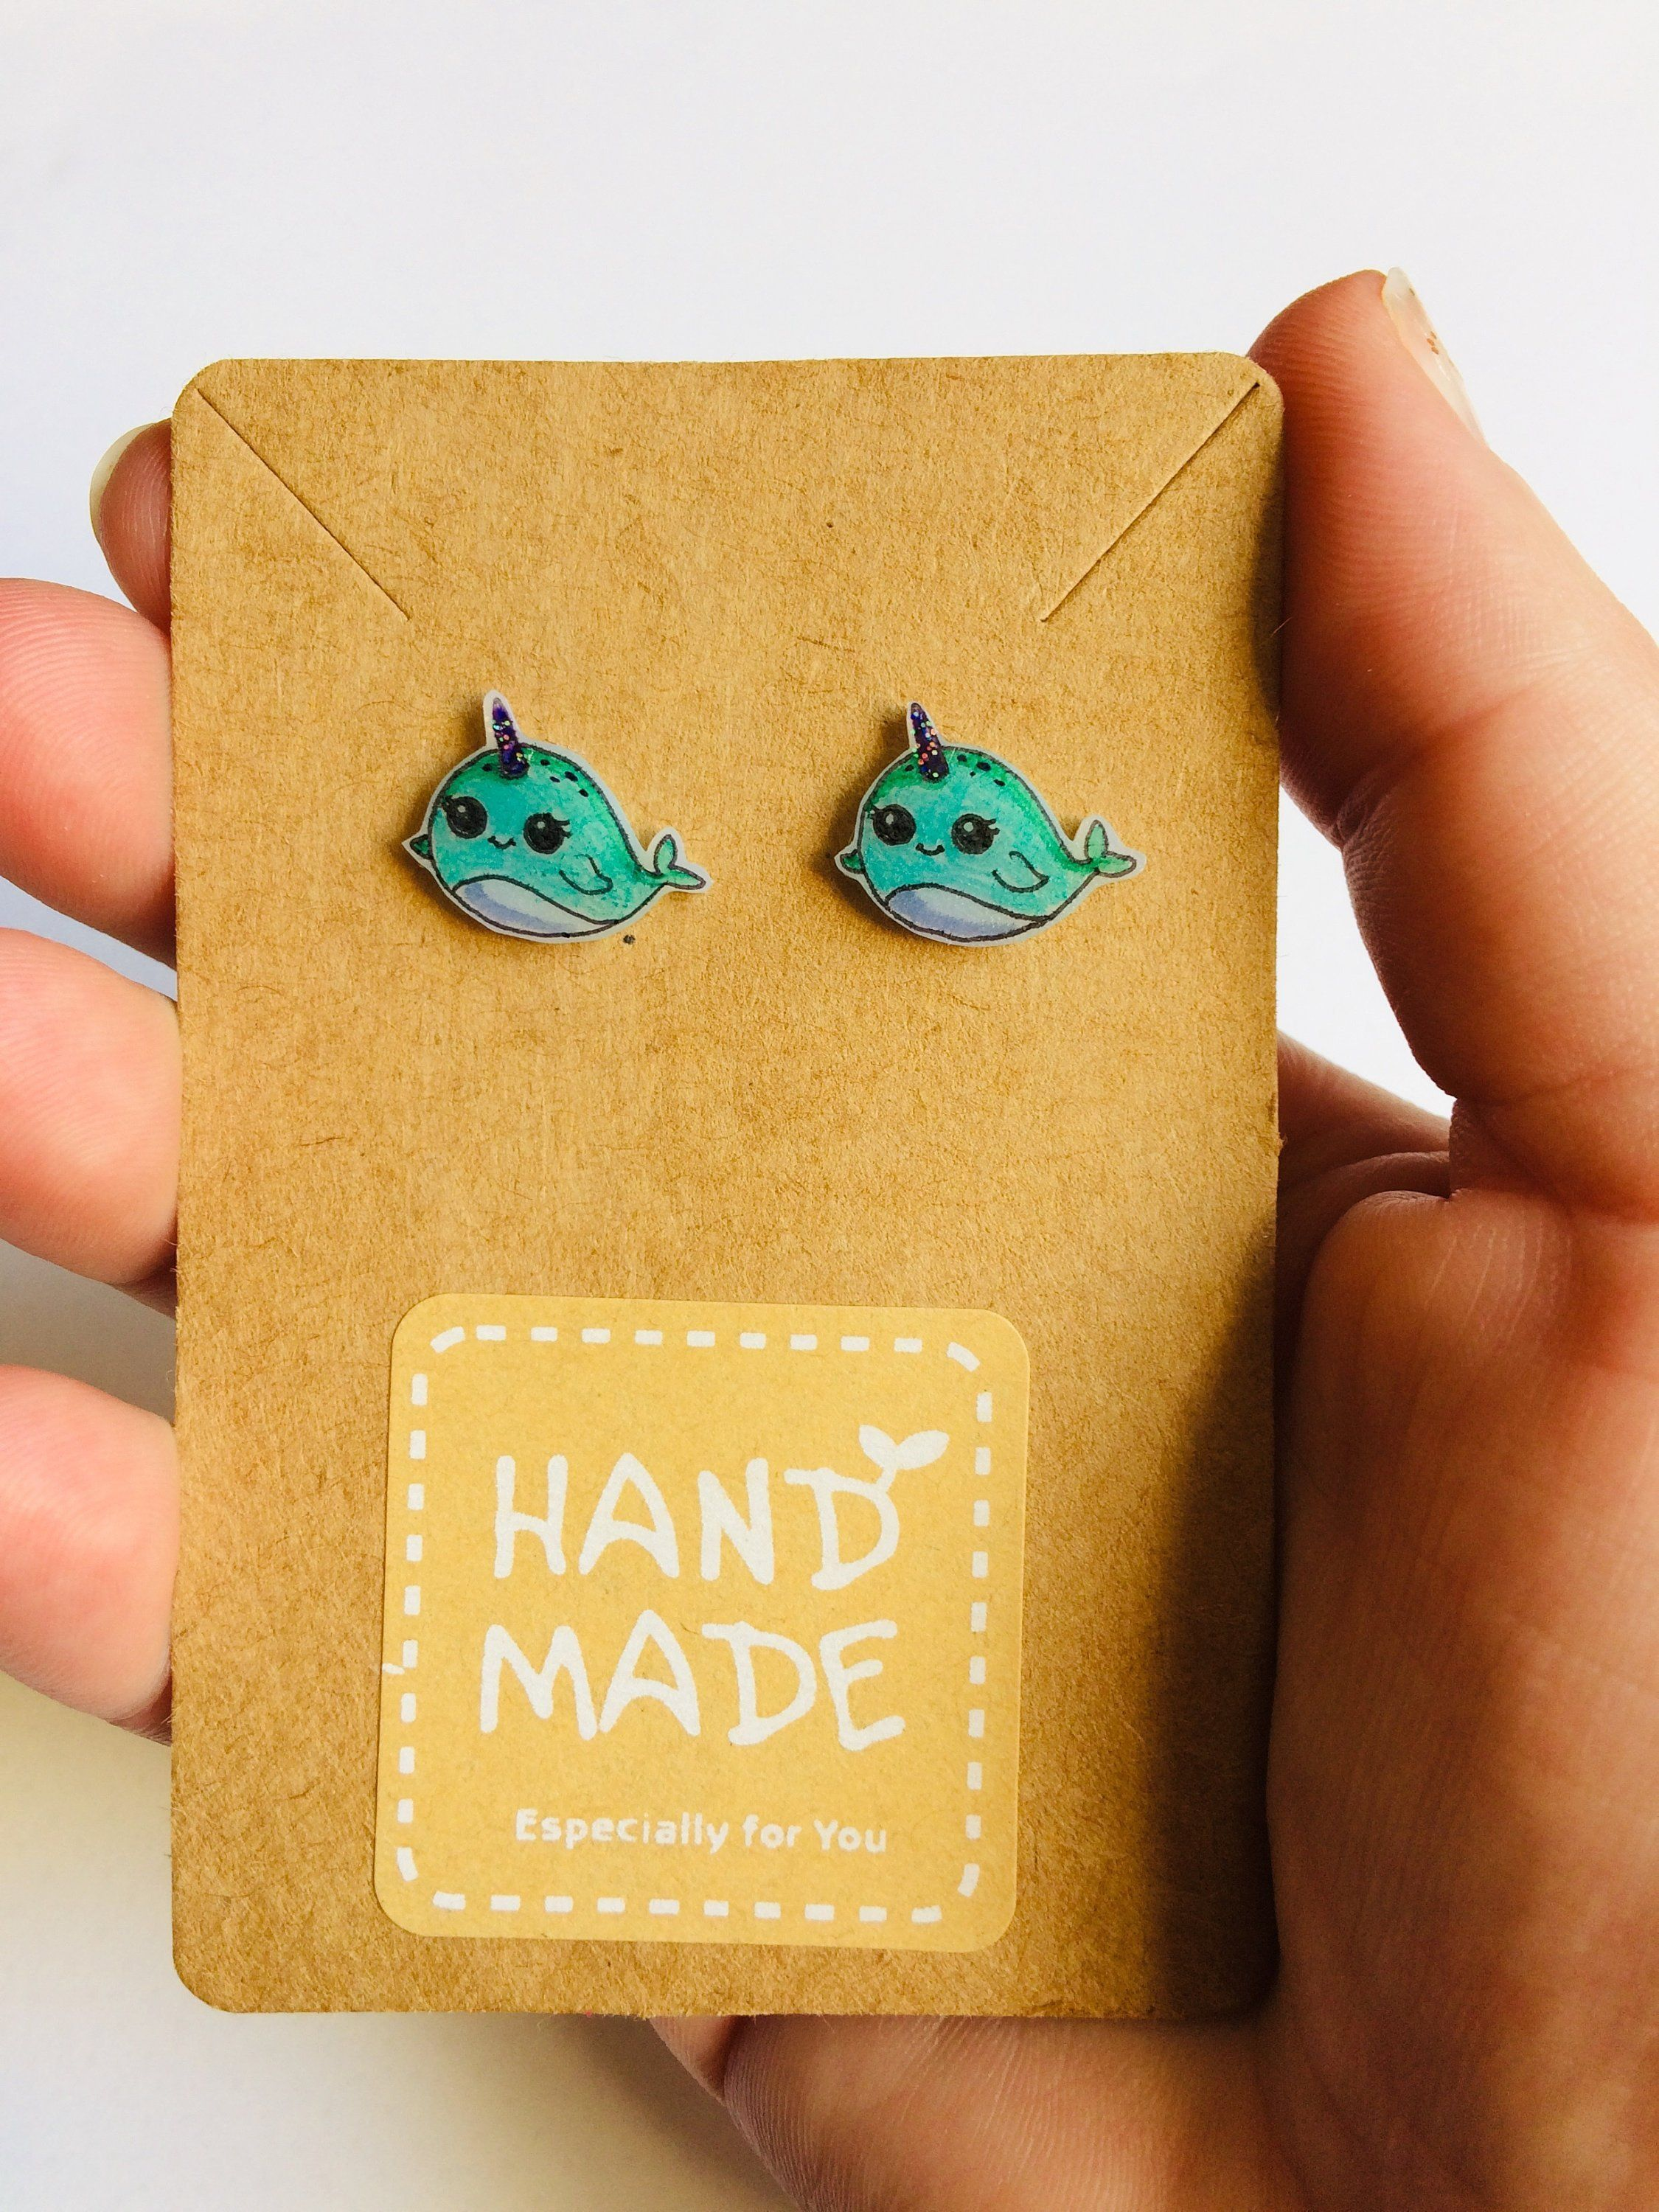 Cute narwhals. Narwhal gifts. Girls earrings. Little girls earrings. Kawaii narwhal.